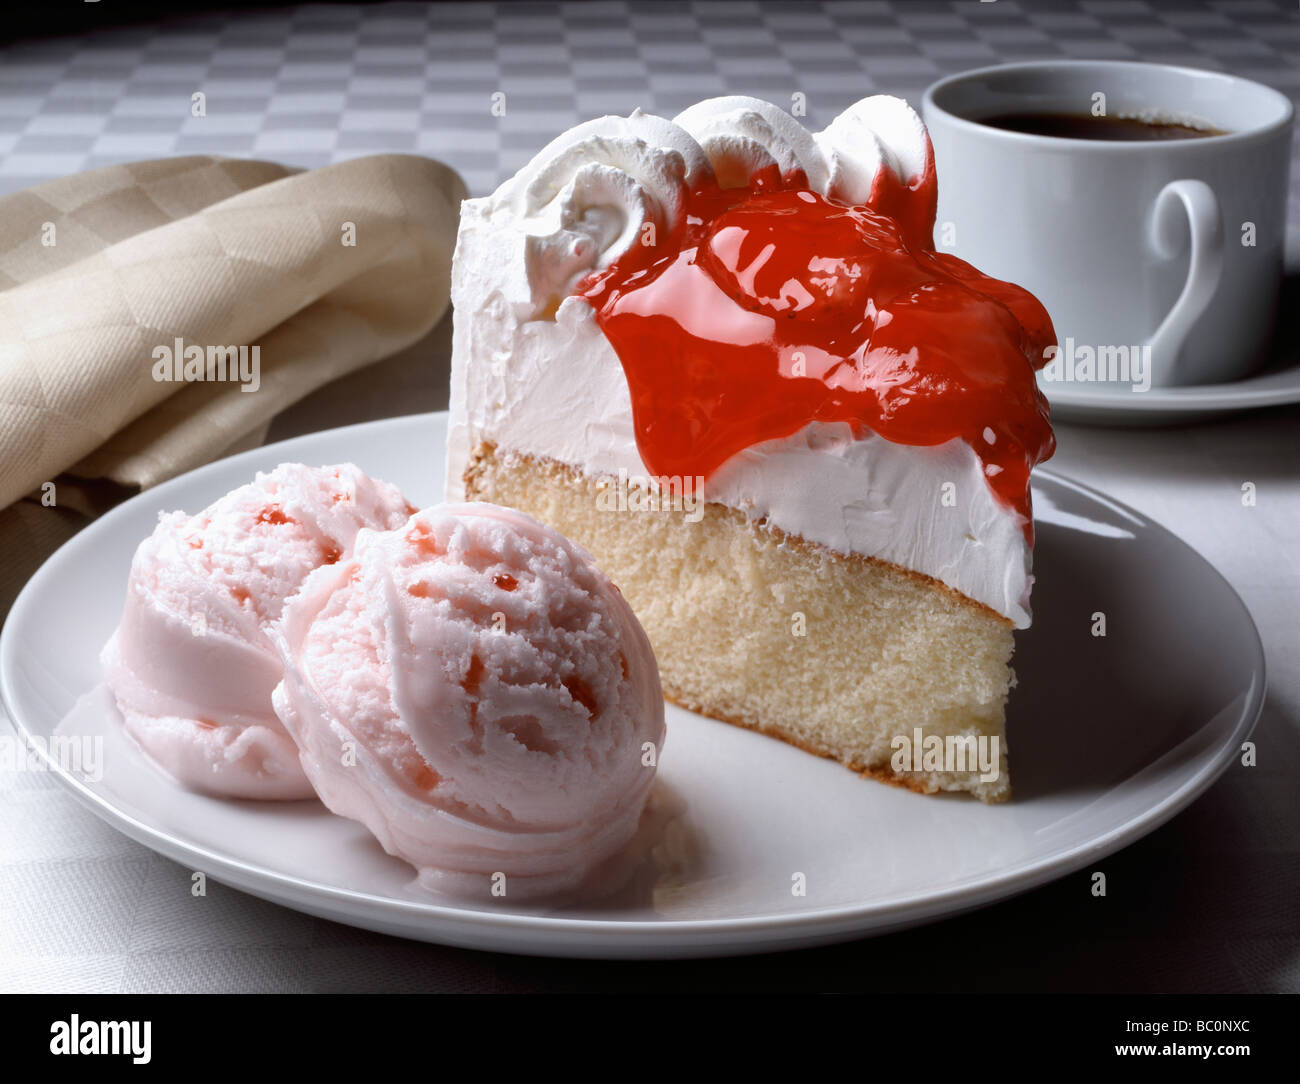 Strawberry topped white cake on a plate with strawberry ice cream and a cup of black coffee. & Strawberry topped white cake on a plate with strawberry ice cream ...